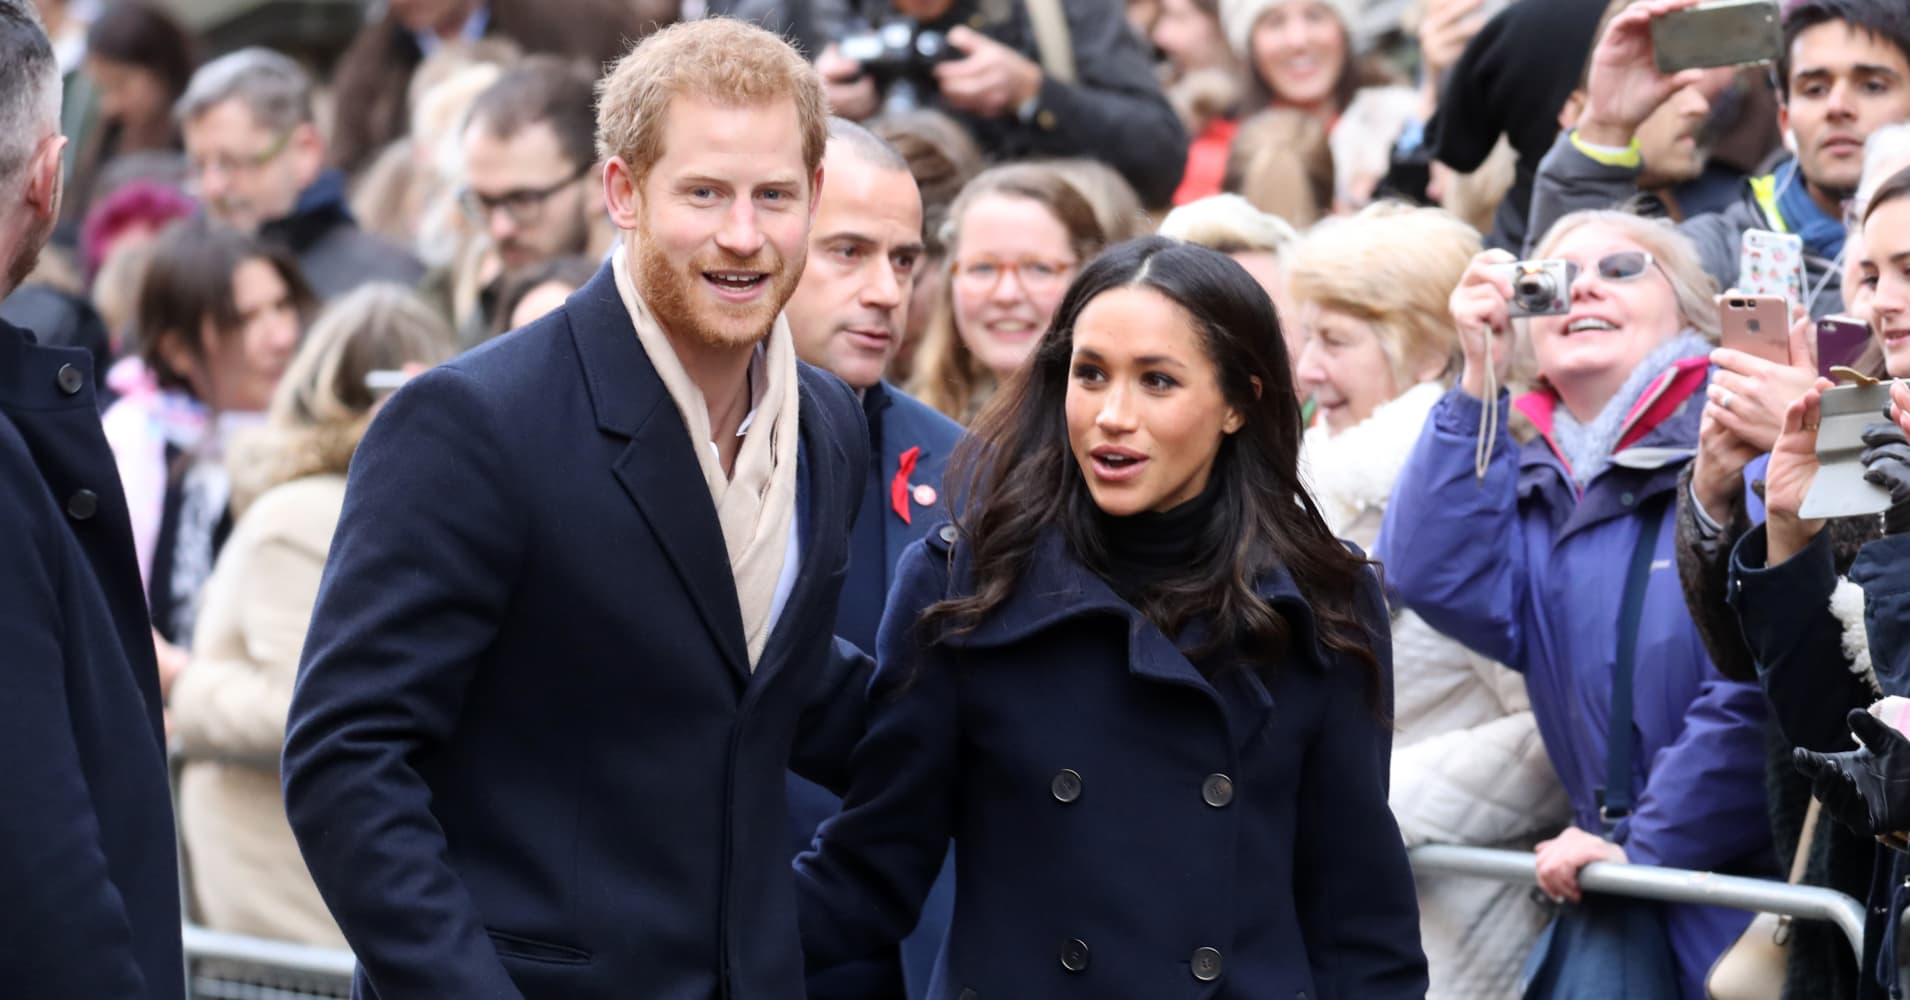 the royal wedding may cost 43 million and 94 of that is for security